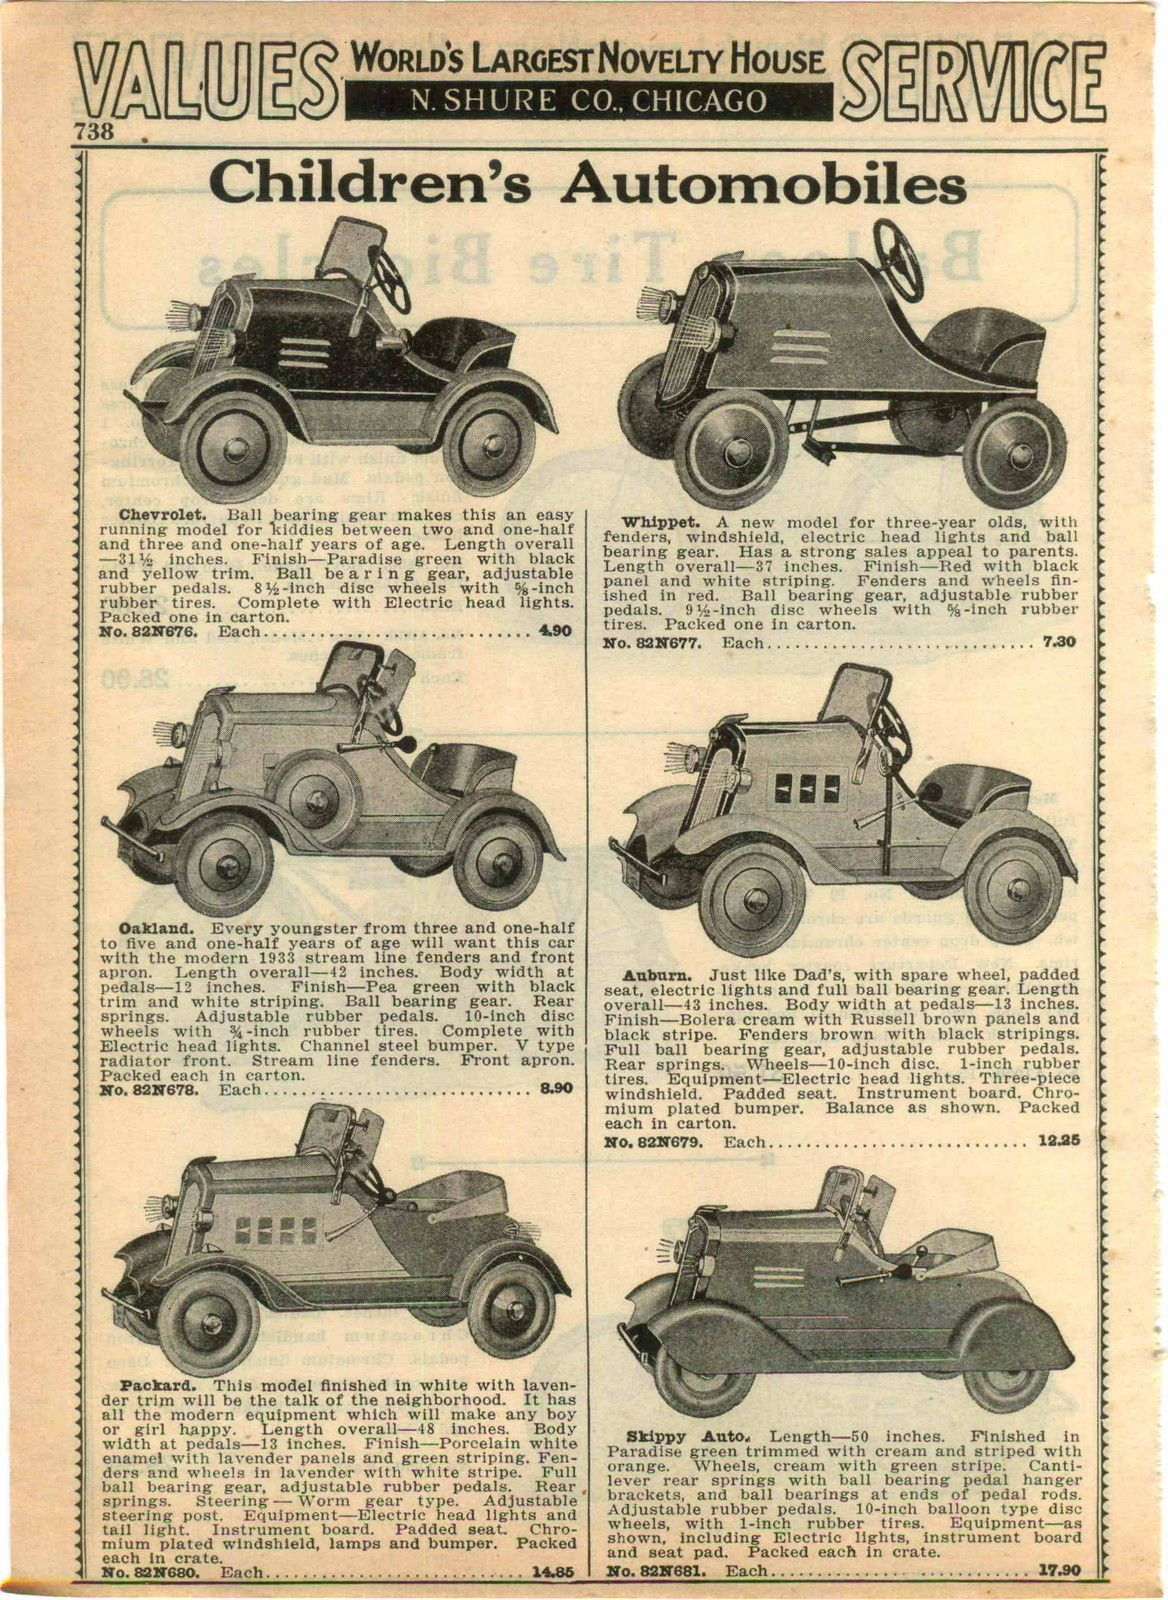 Electronics Cars Fashion Collectibles Coupons And More Pedal Cars Vintage Pedal Cars Car Chevrolet